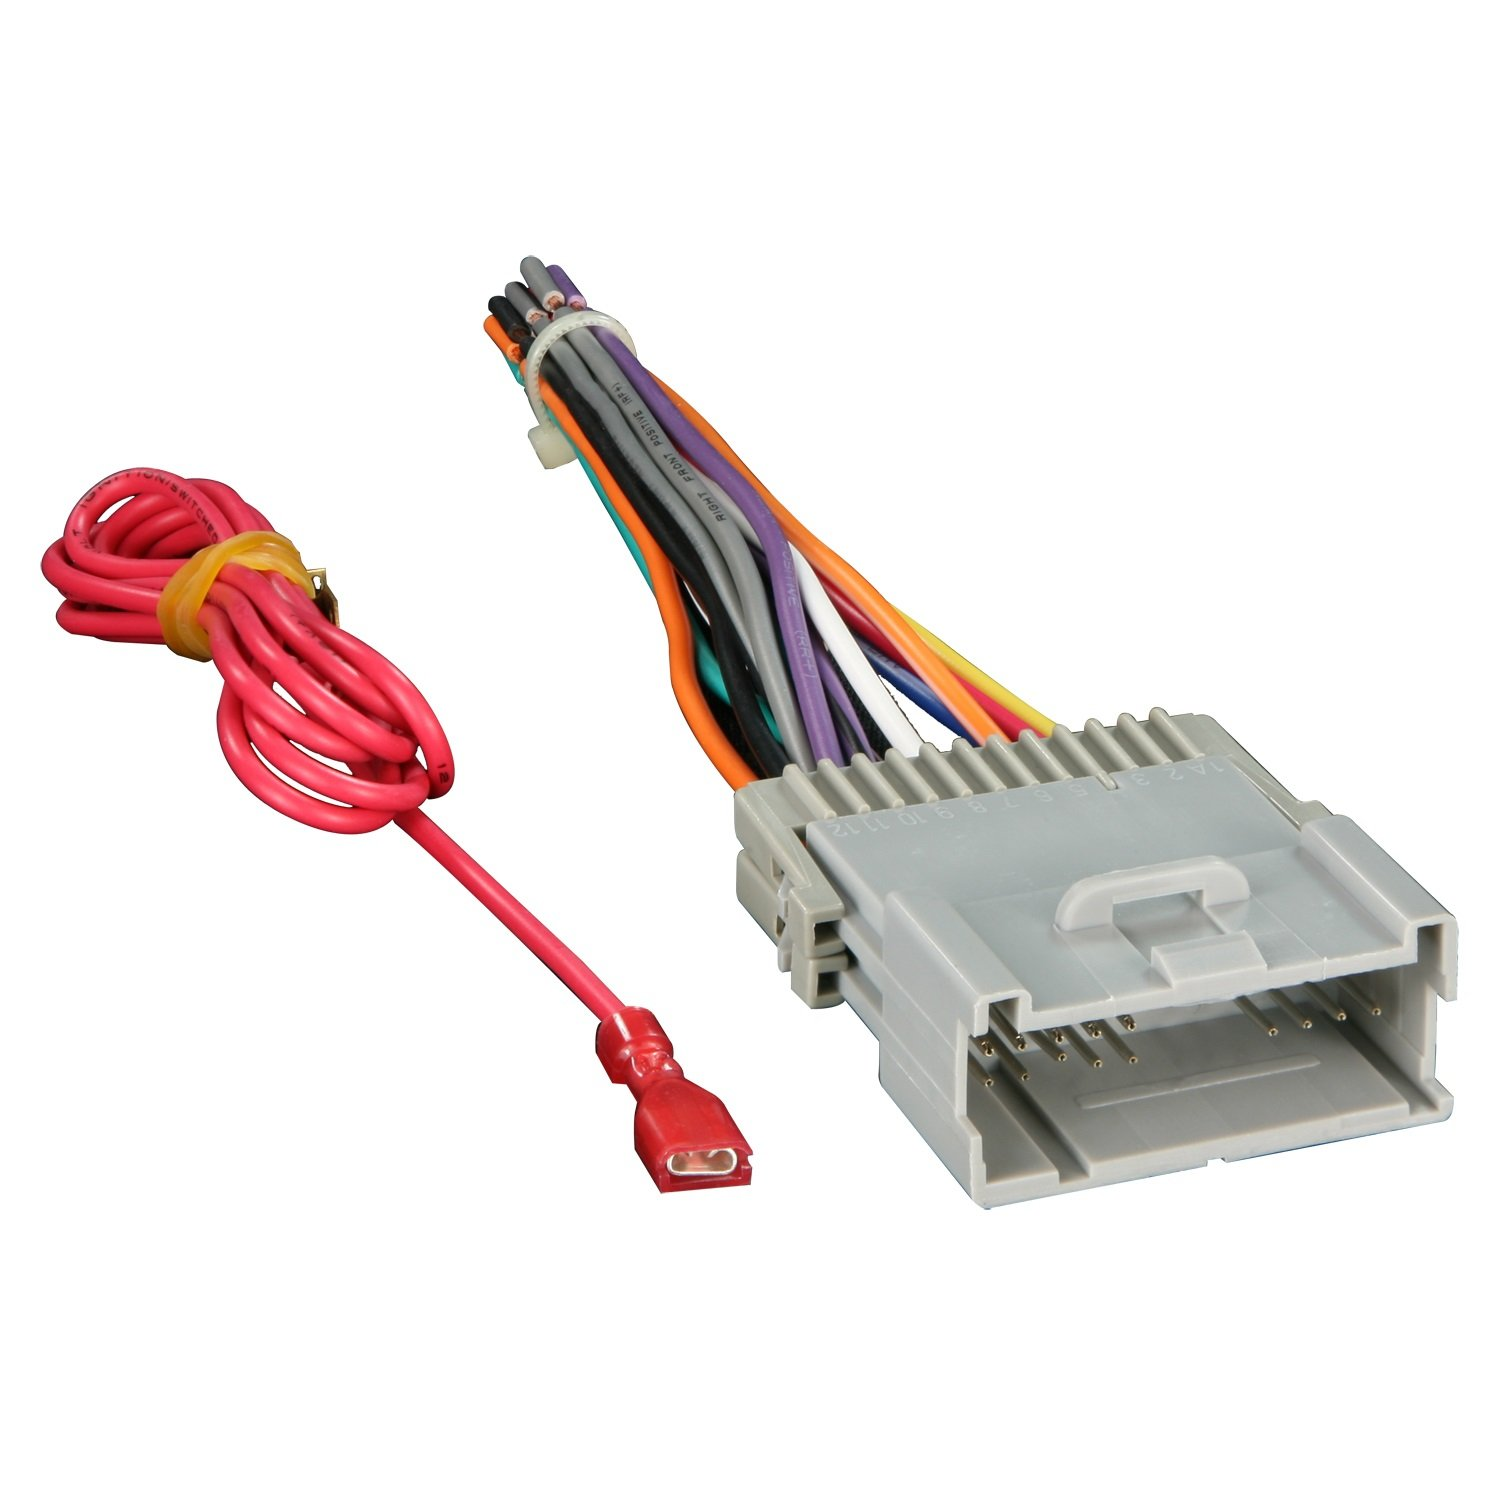 61eewxp9orL._SL1500_ amazon com metra 70 2003 radio wiring harness for gm 98 08 snap on wire harness adapter at sewacar.co